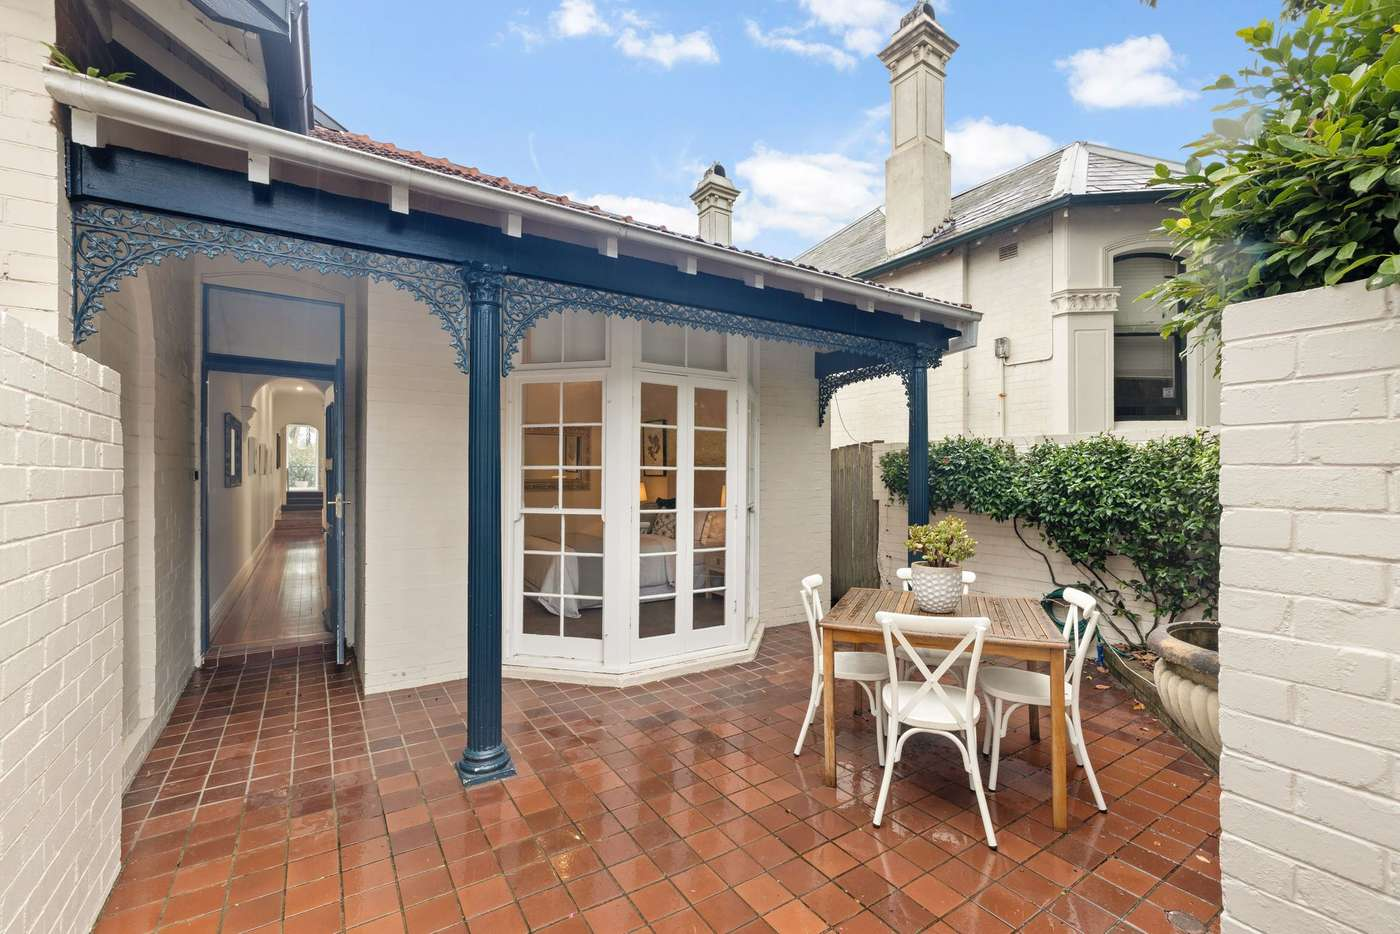 Main view of Homely house listing, 112 Shadforth Street, Mosman NSW 2088